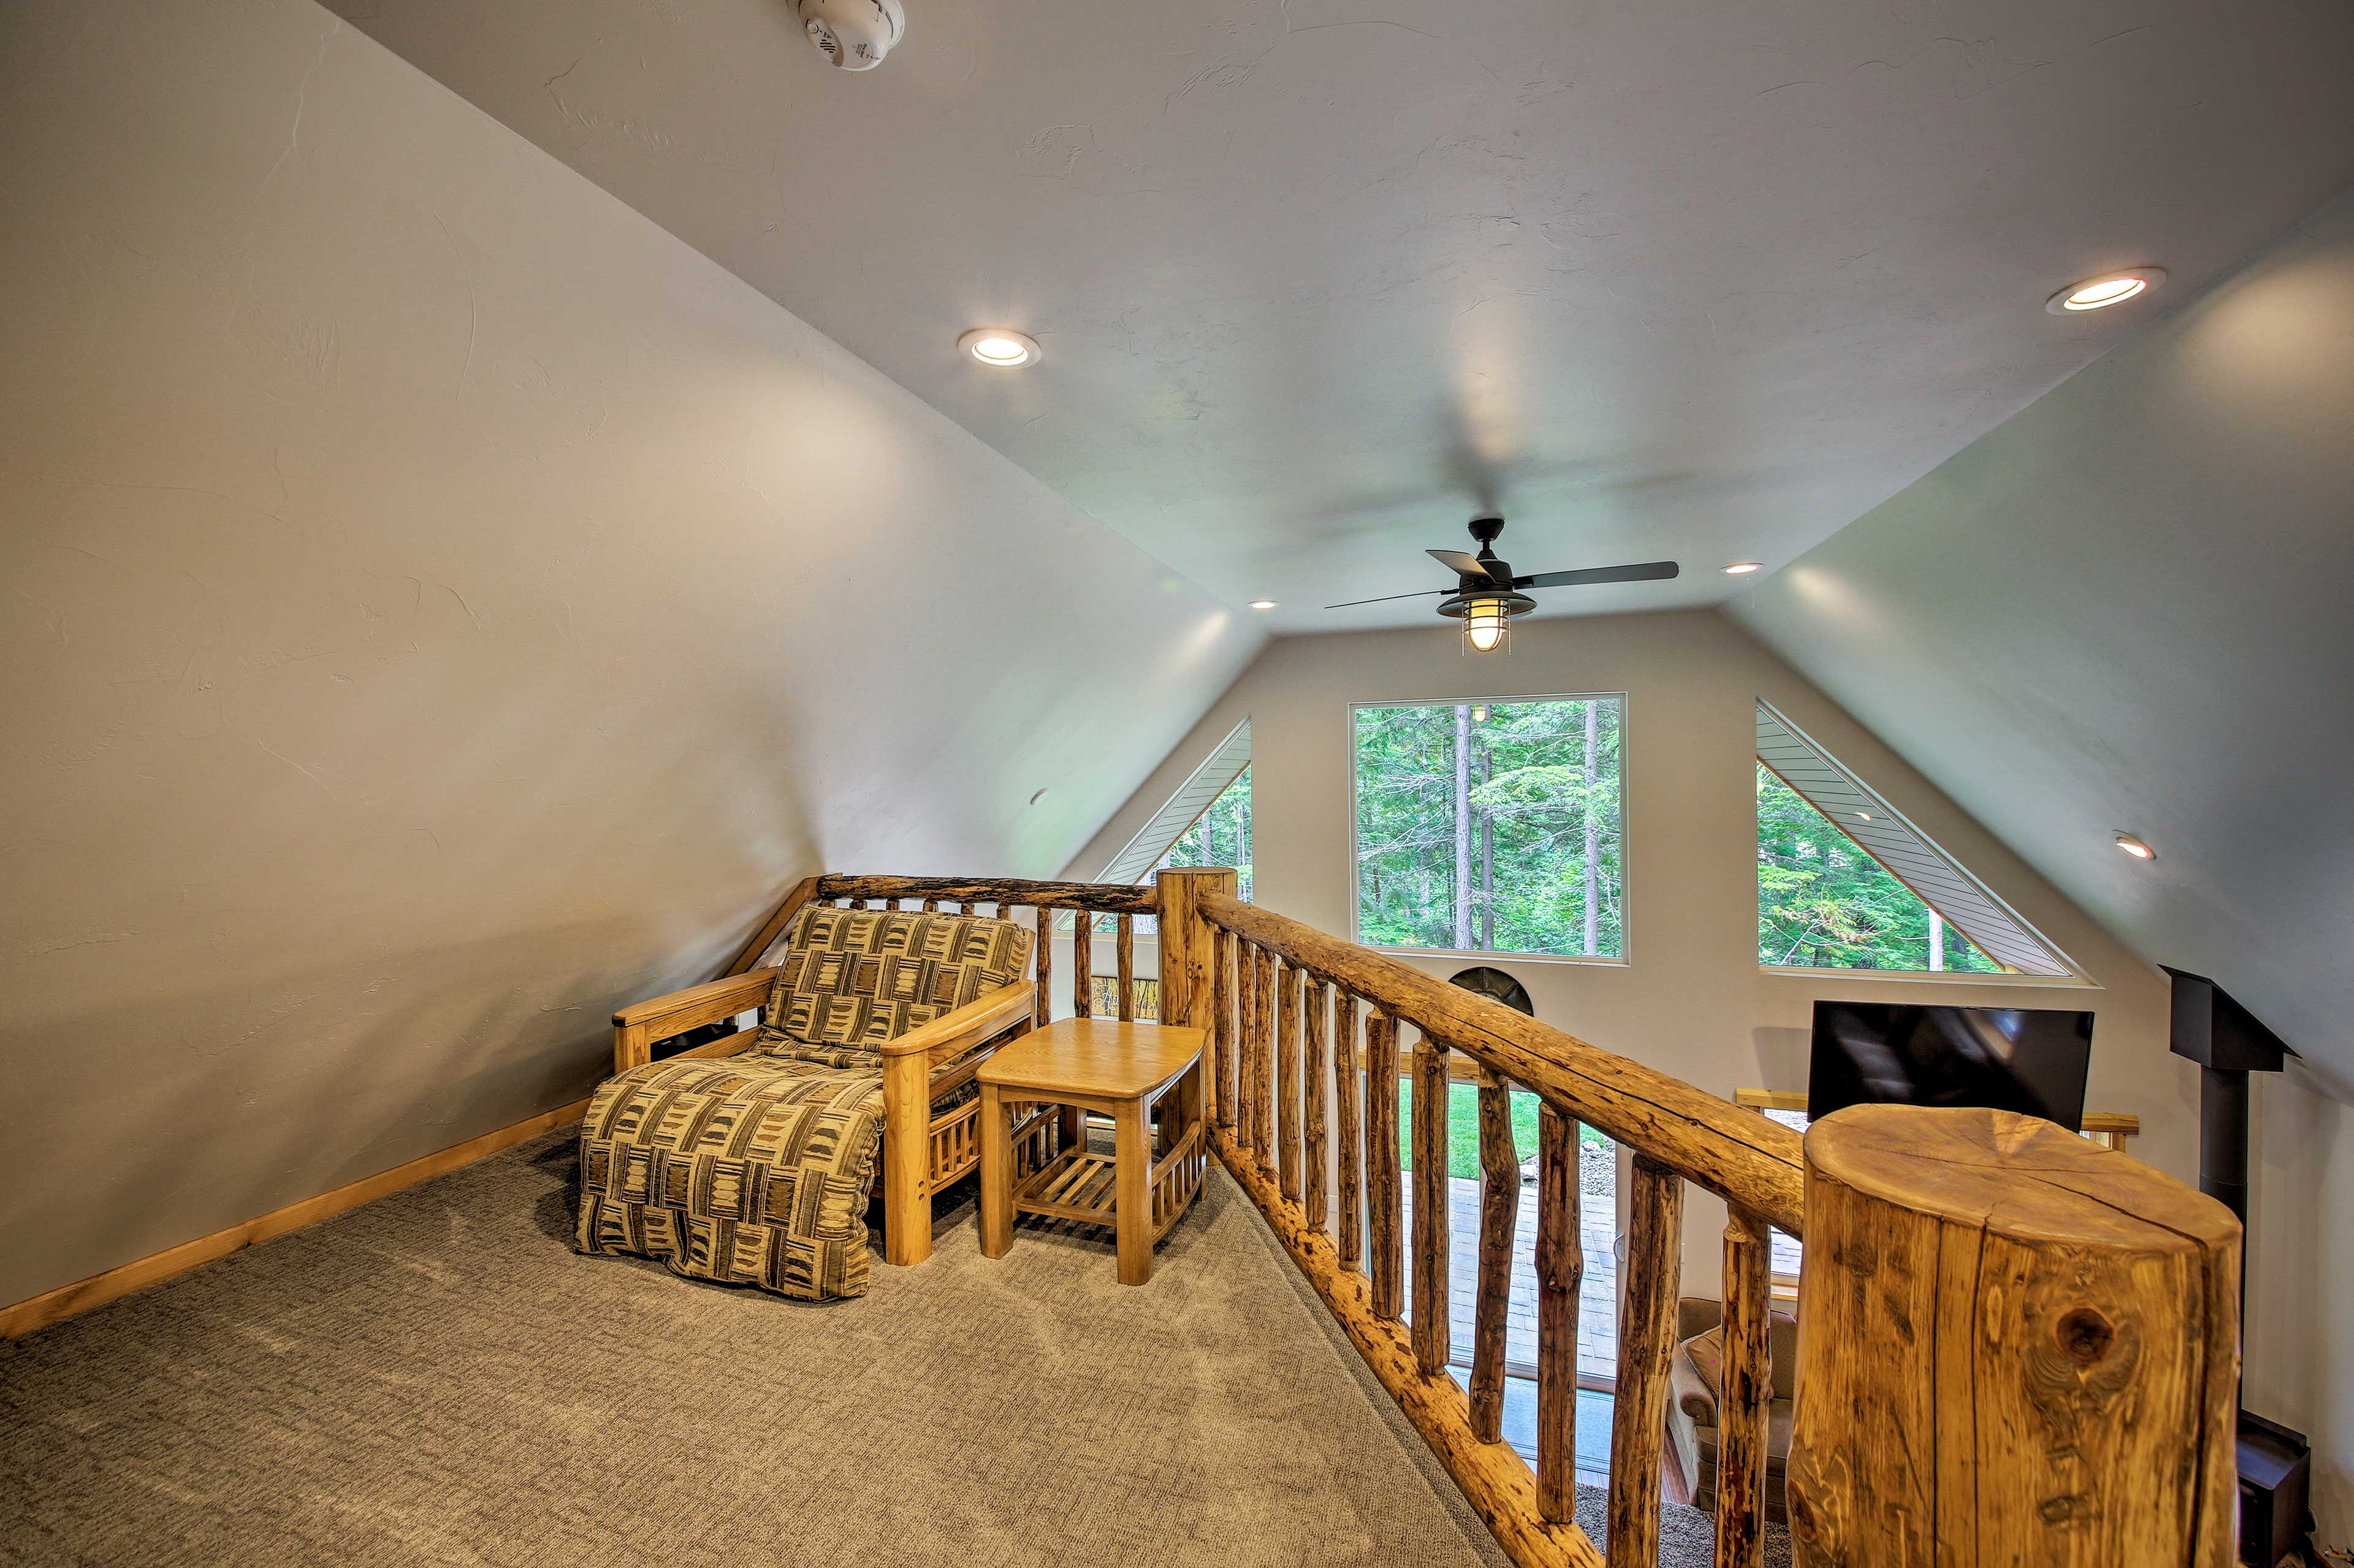 Upon request, the cabin has an air mattress for additional sleeping in the loft.